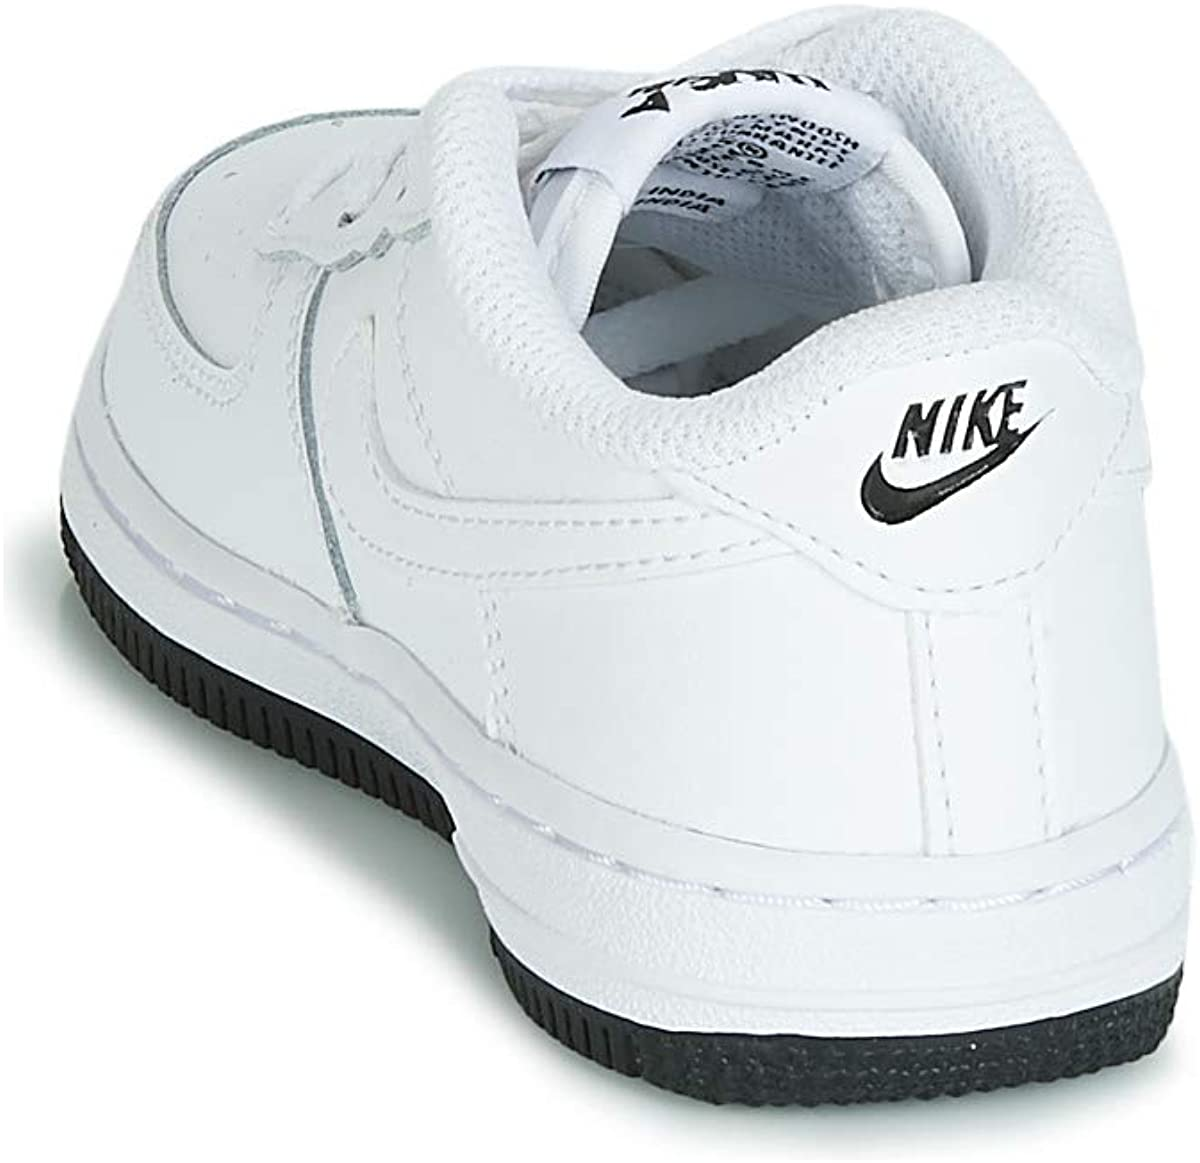 Nike Air Force 1 LV8 2 Sneakers Bambino BiancoNero Sneakers Basse